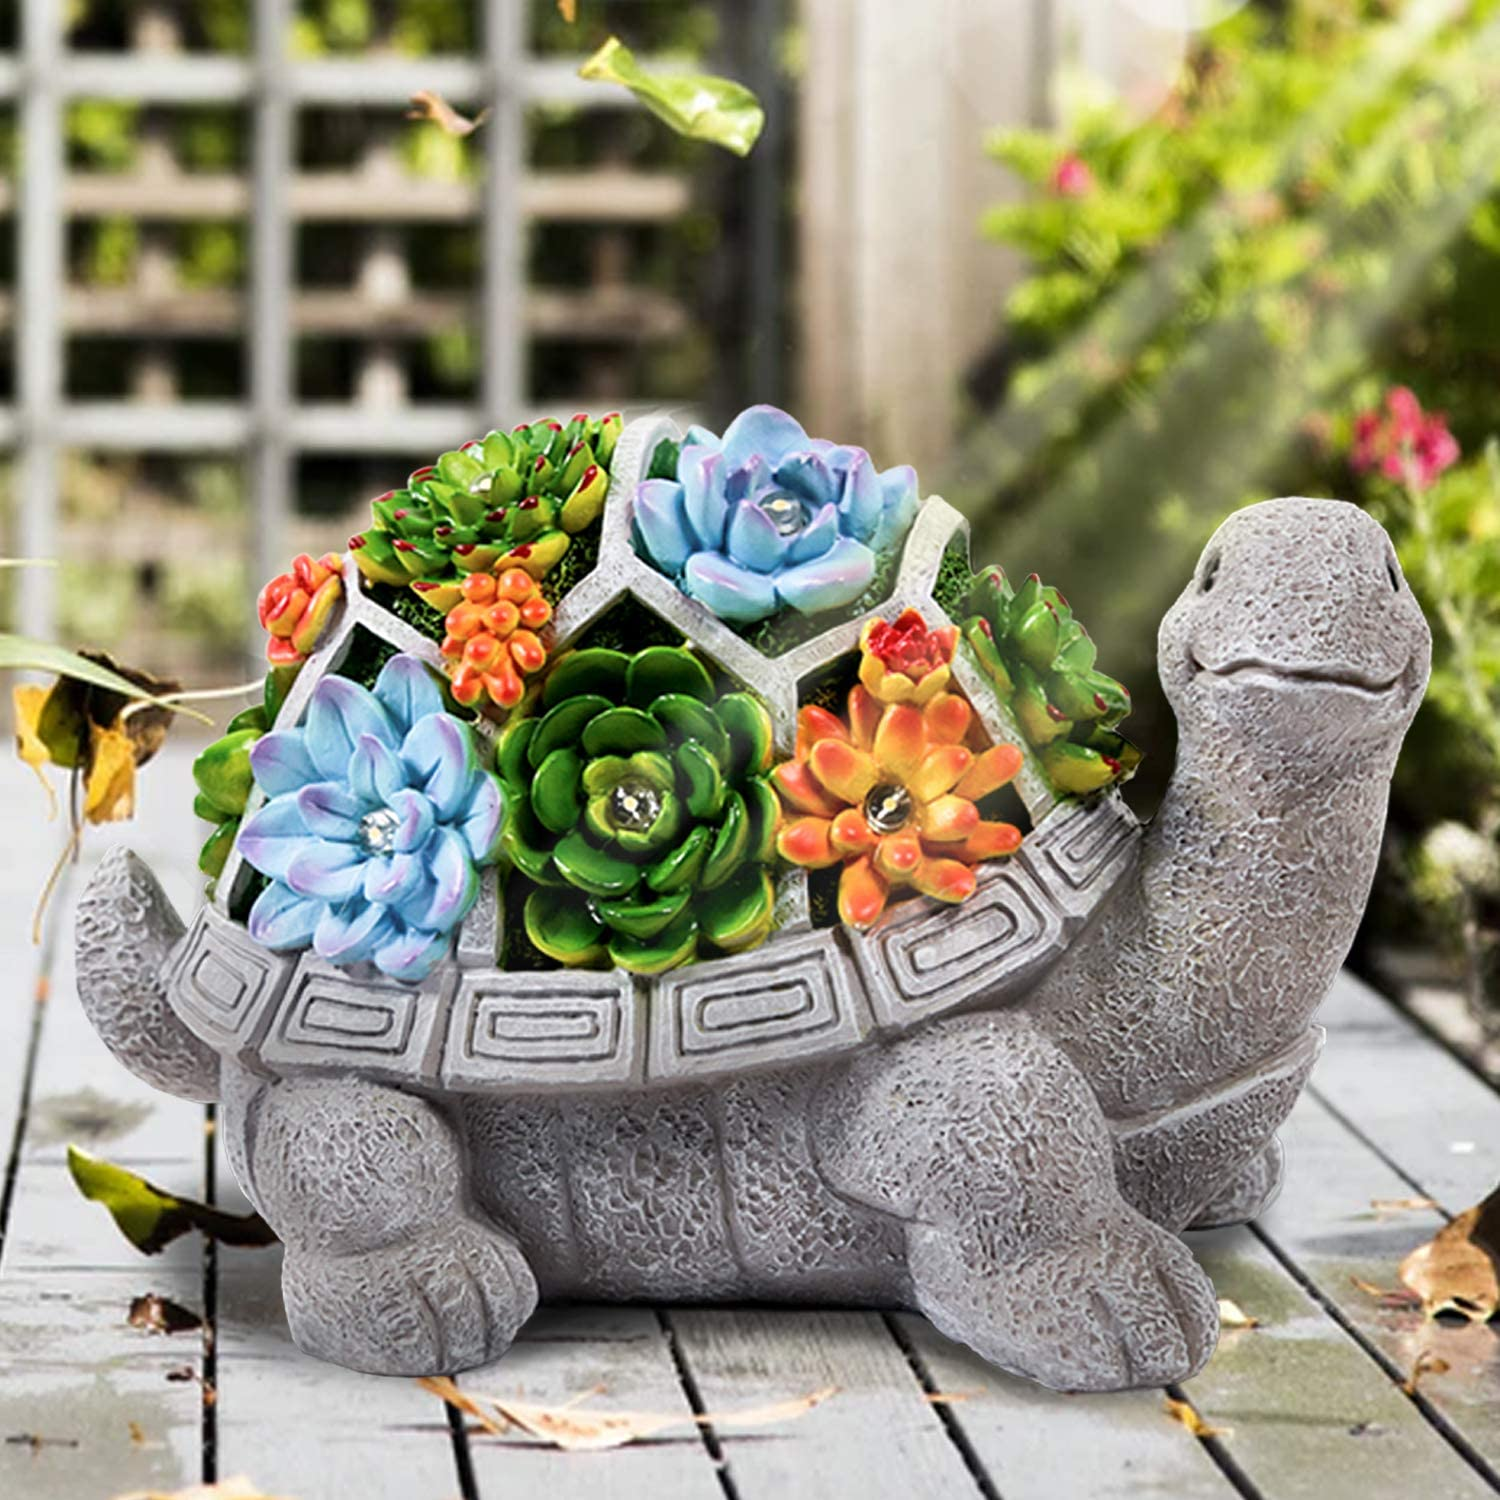 LESES Garden Statues Turtle Outdoor Ornament Figurines with Solar Powered Lights Decorations for Patio Yard Lawn Gardening Gifts